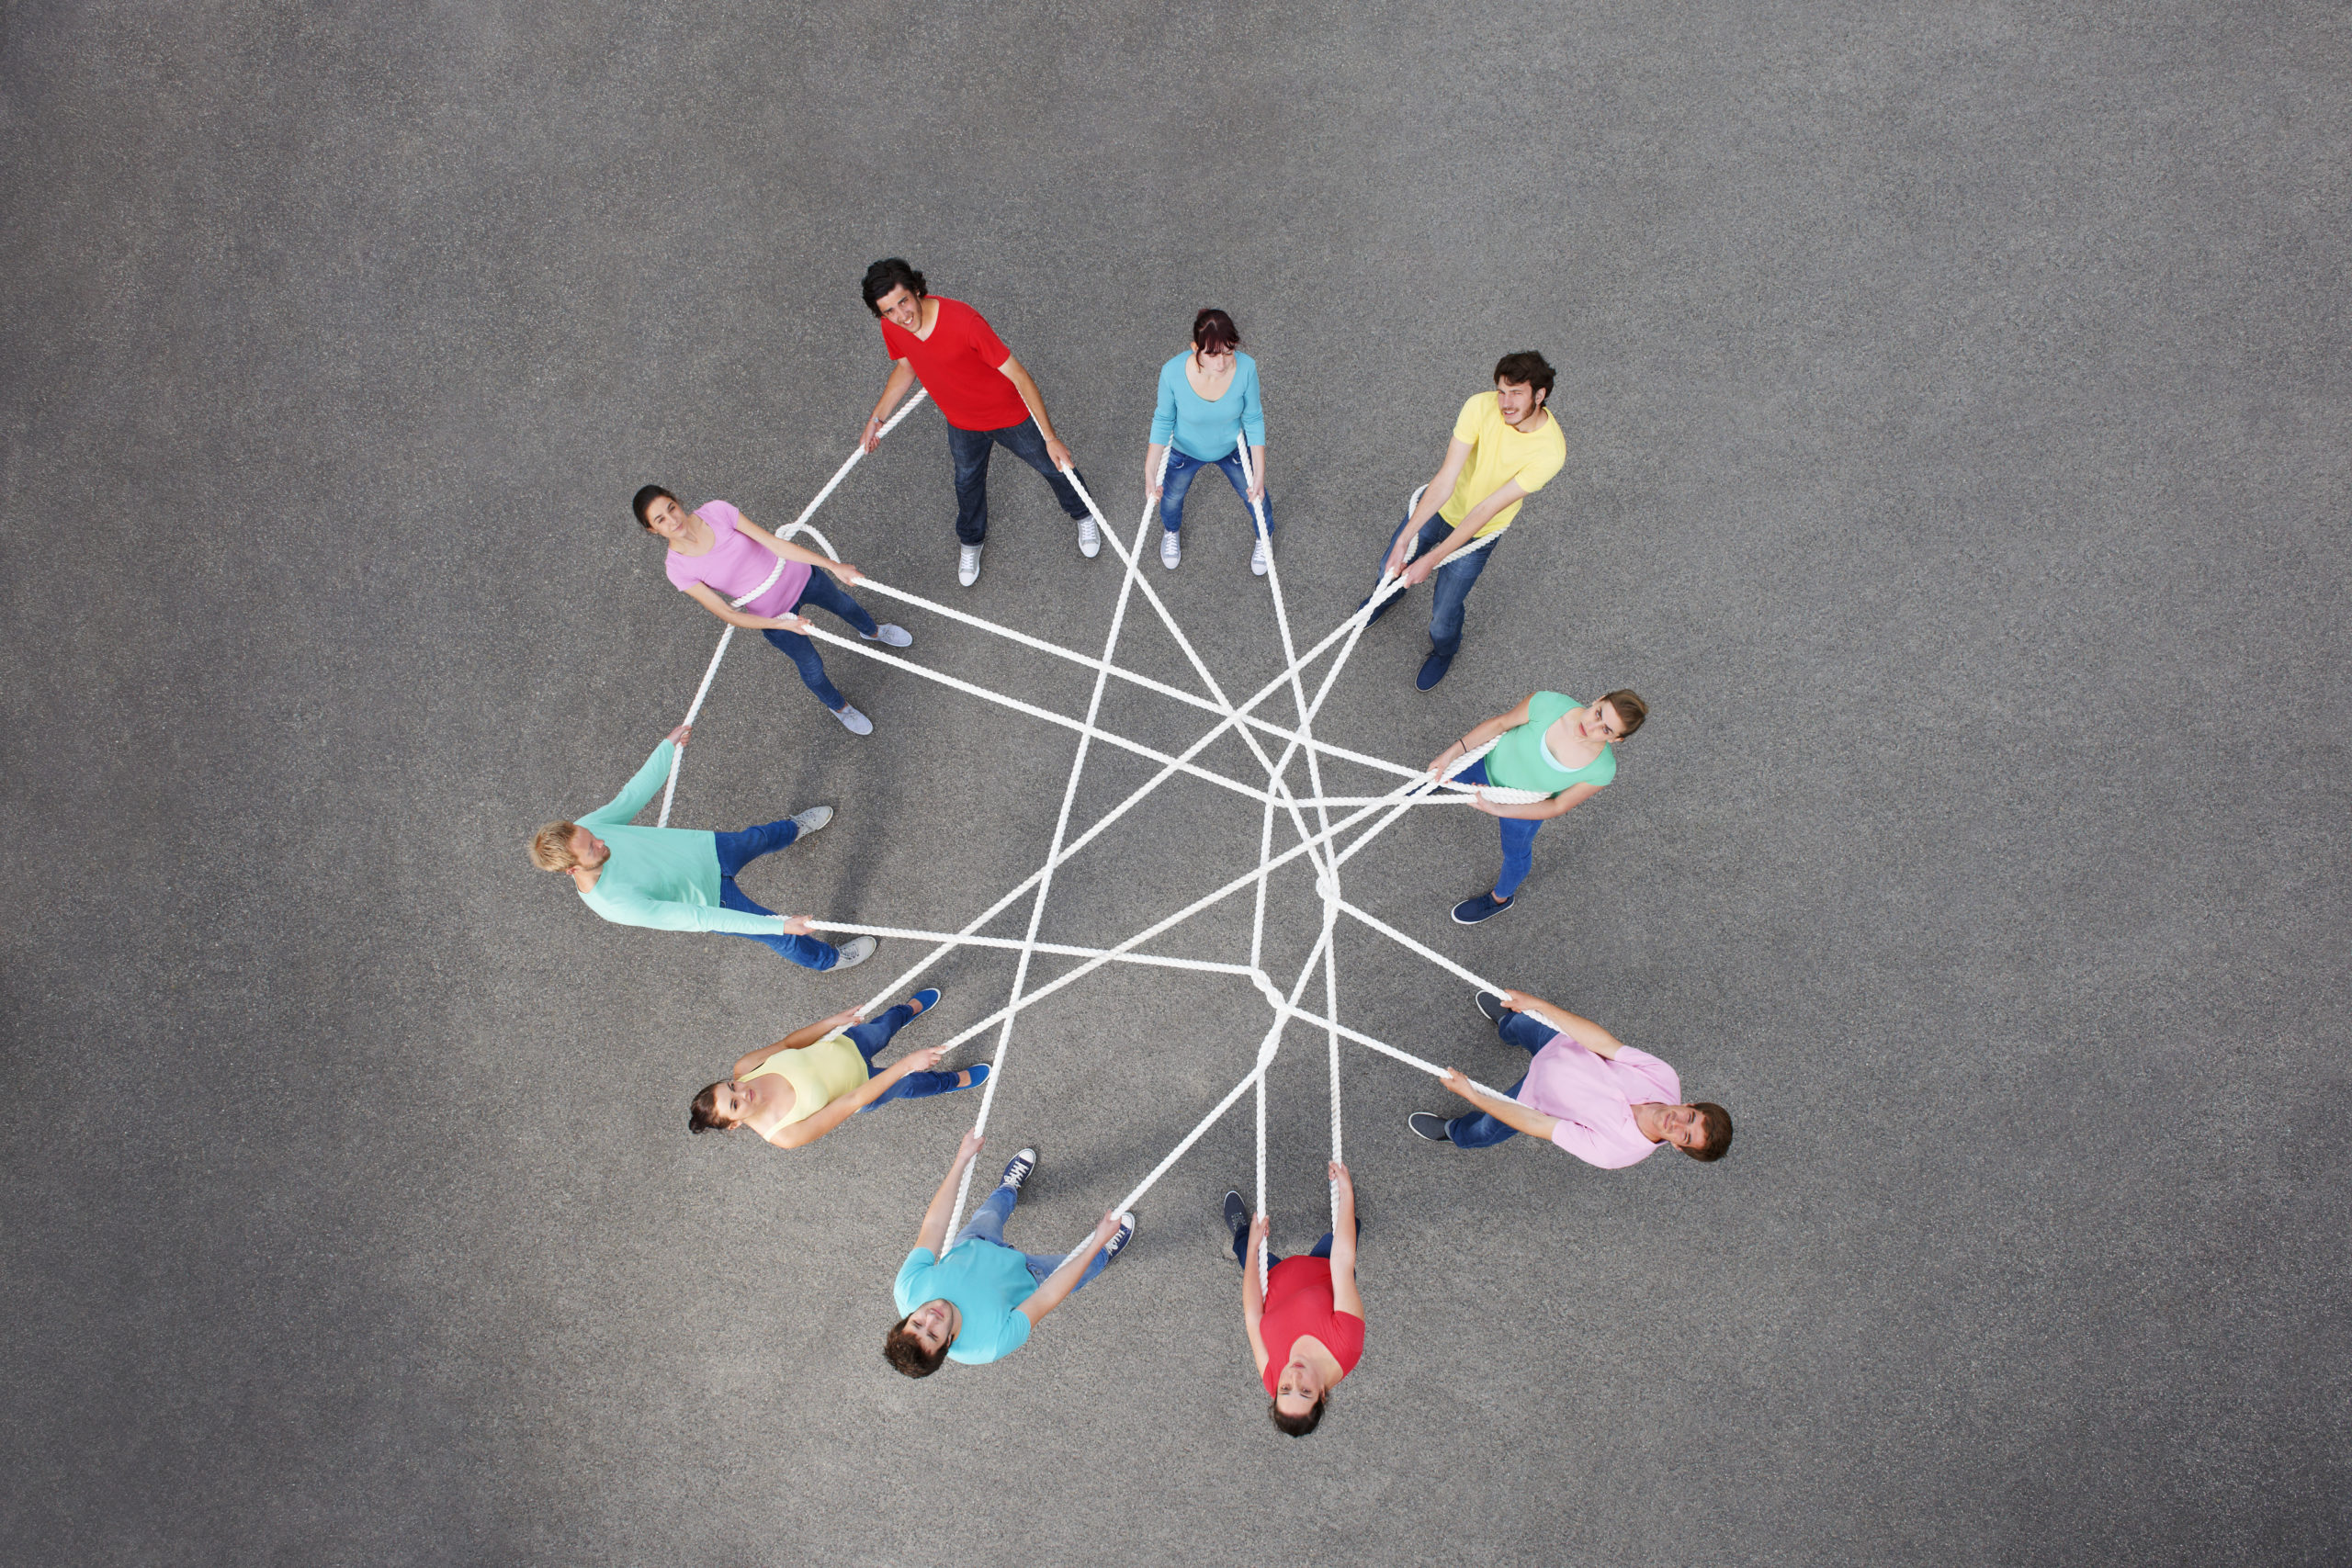 a group connected with a tangled rope illustrate the gordian knot of social media